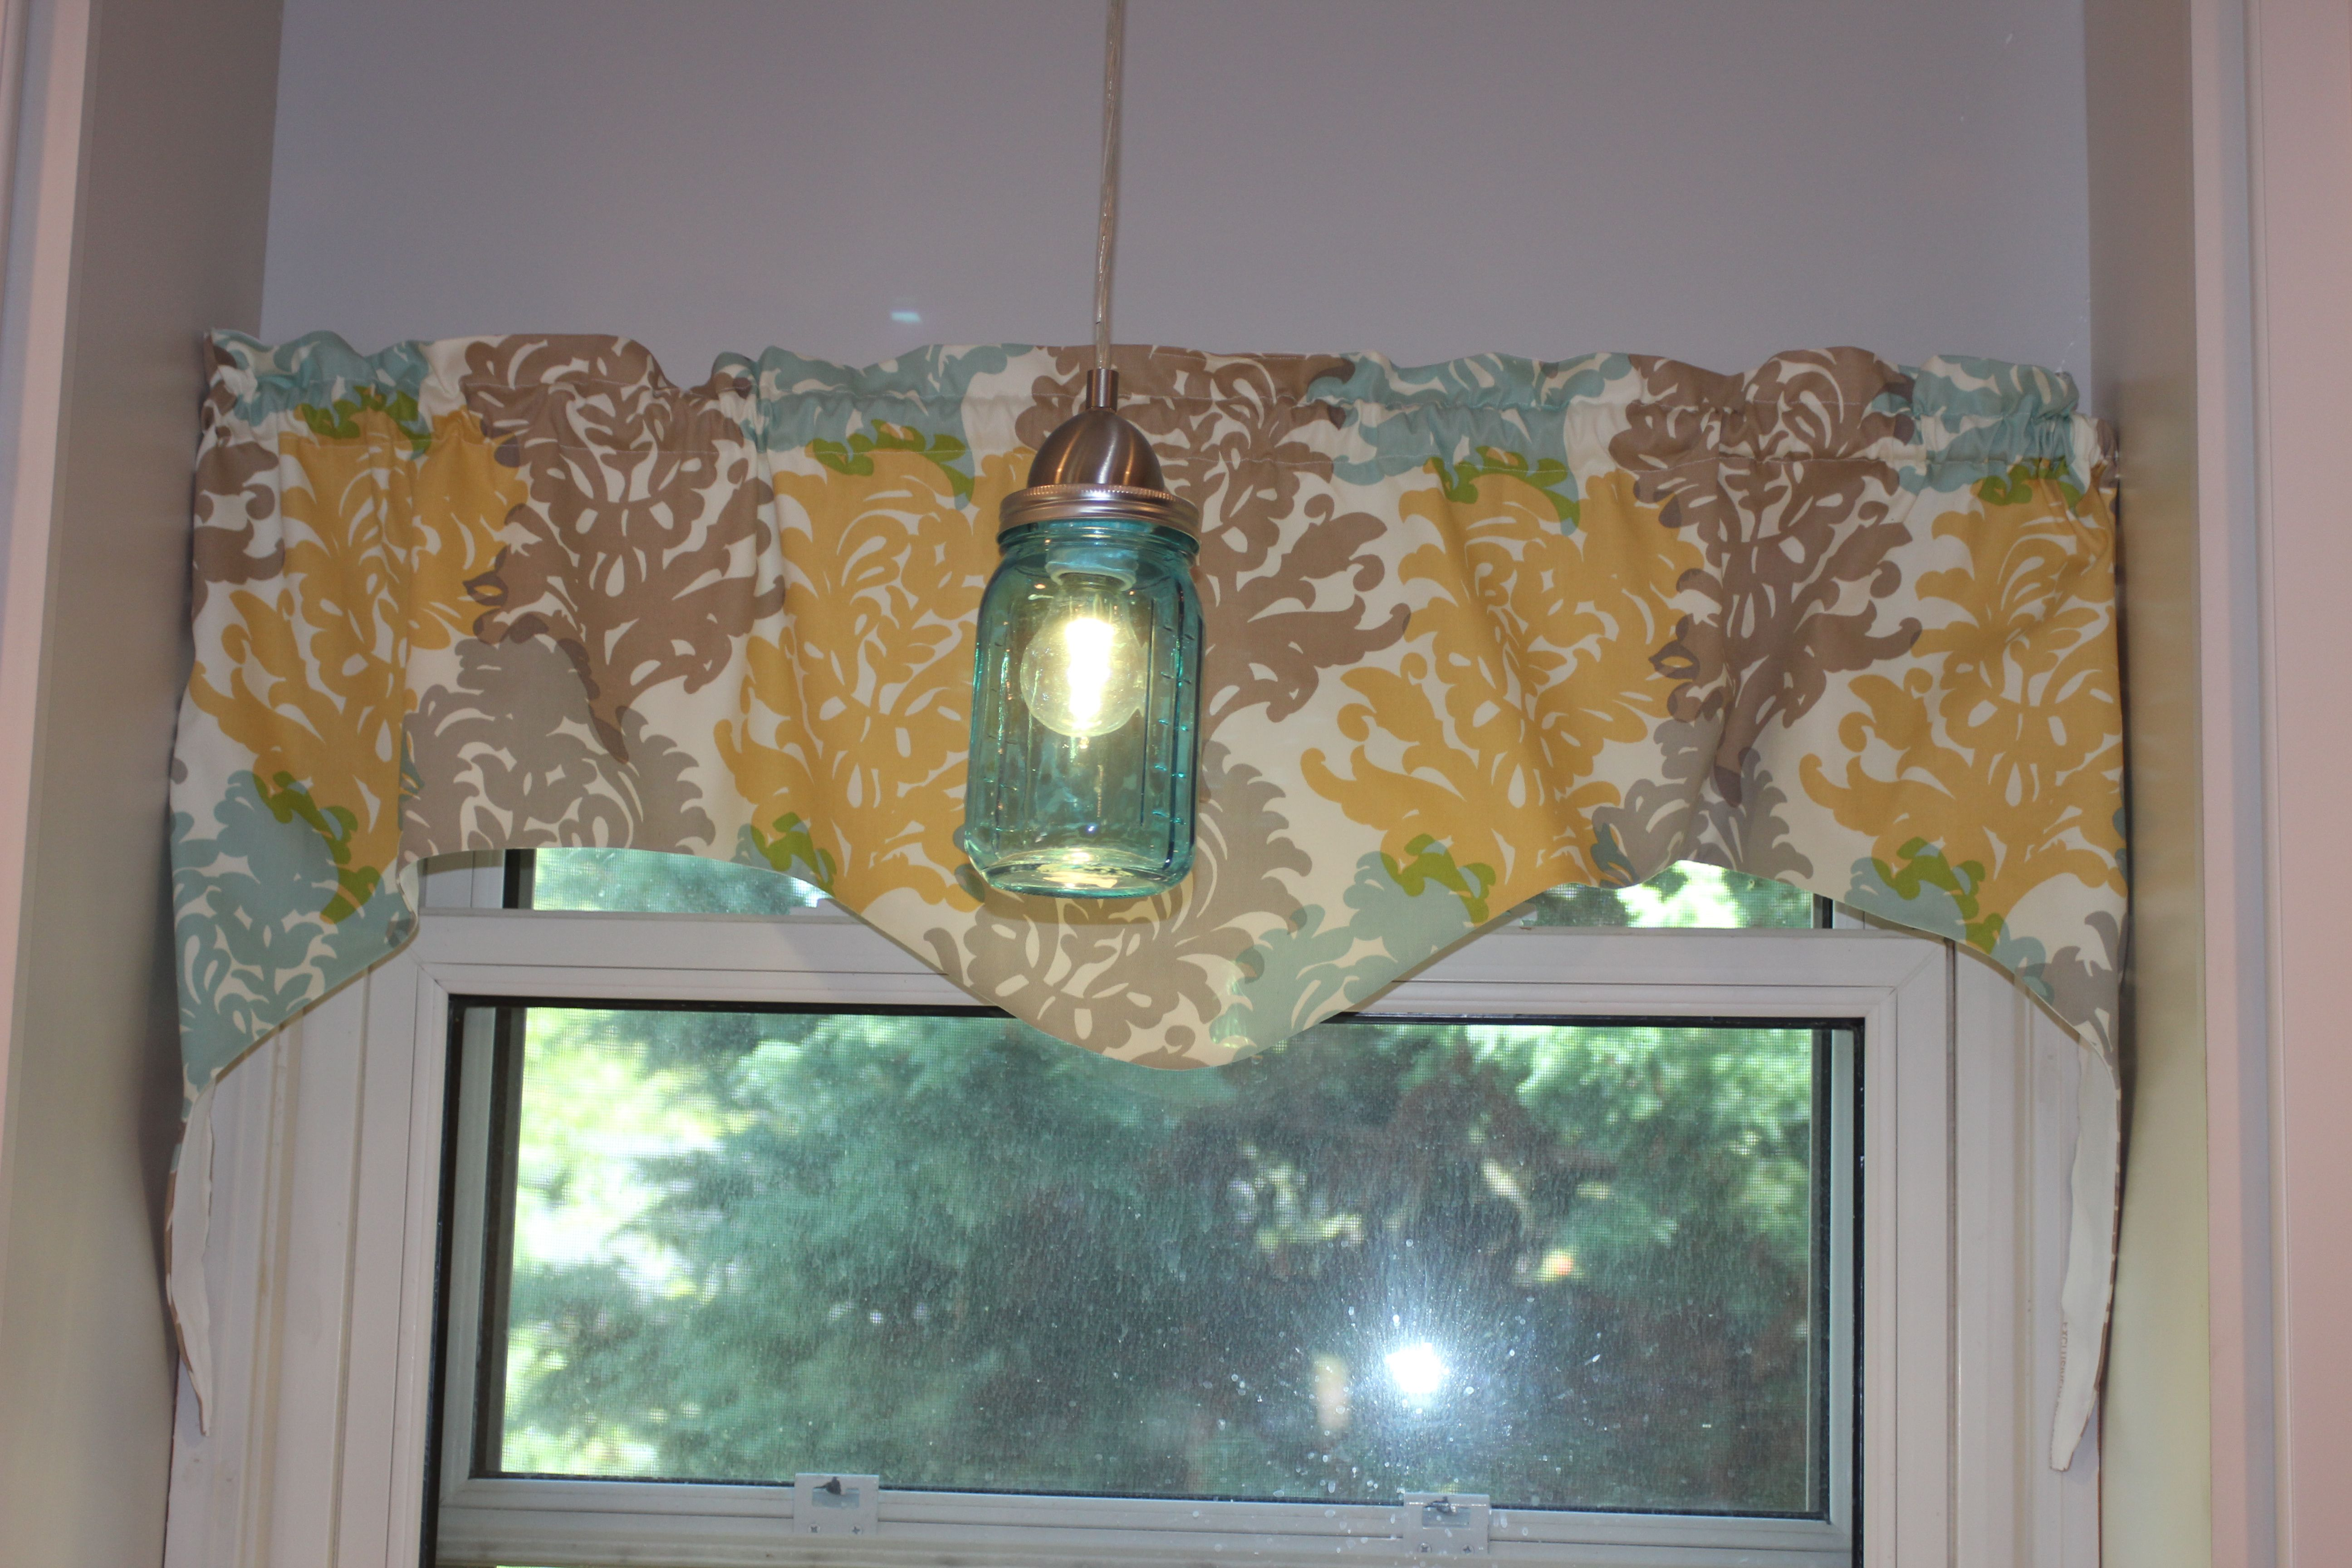 Homemade valance and mason jar pendant light. Thanks pinterest for the ideas, it came out great!